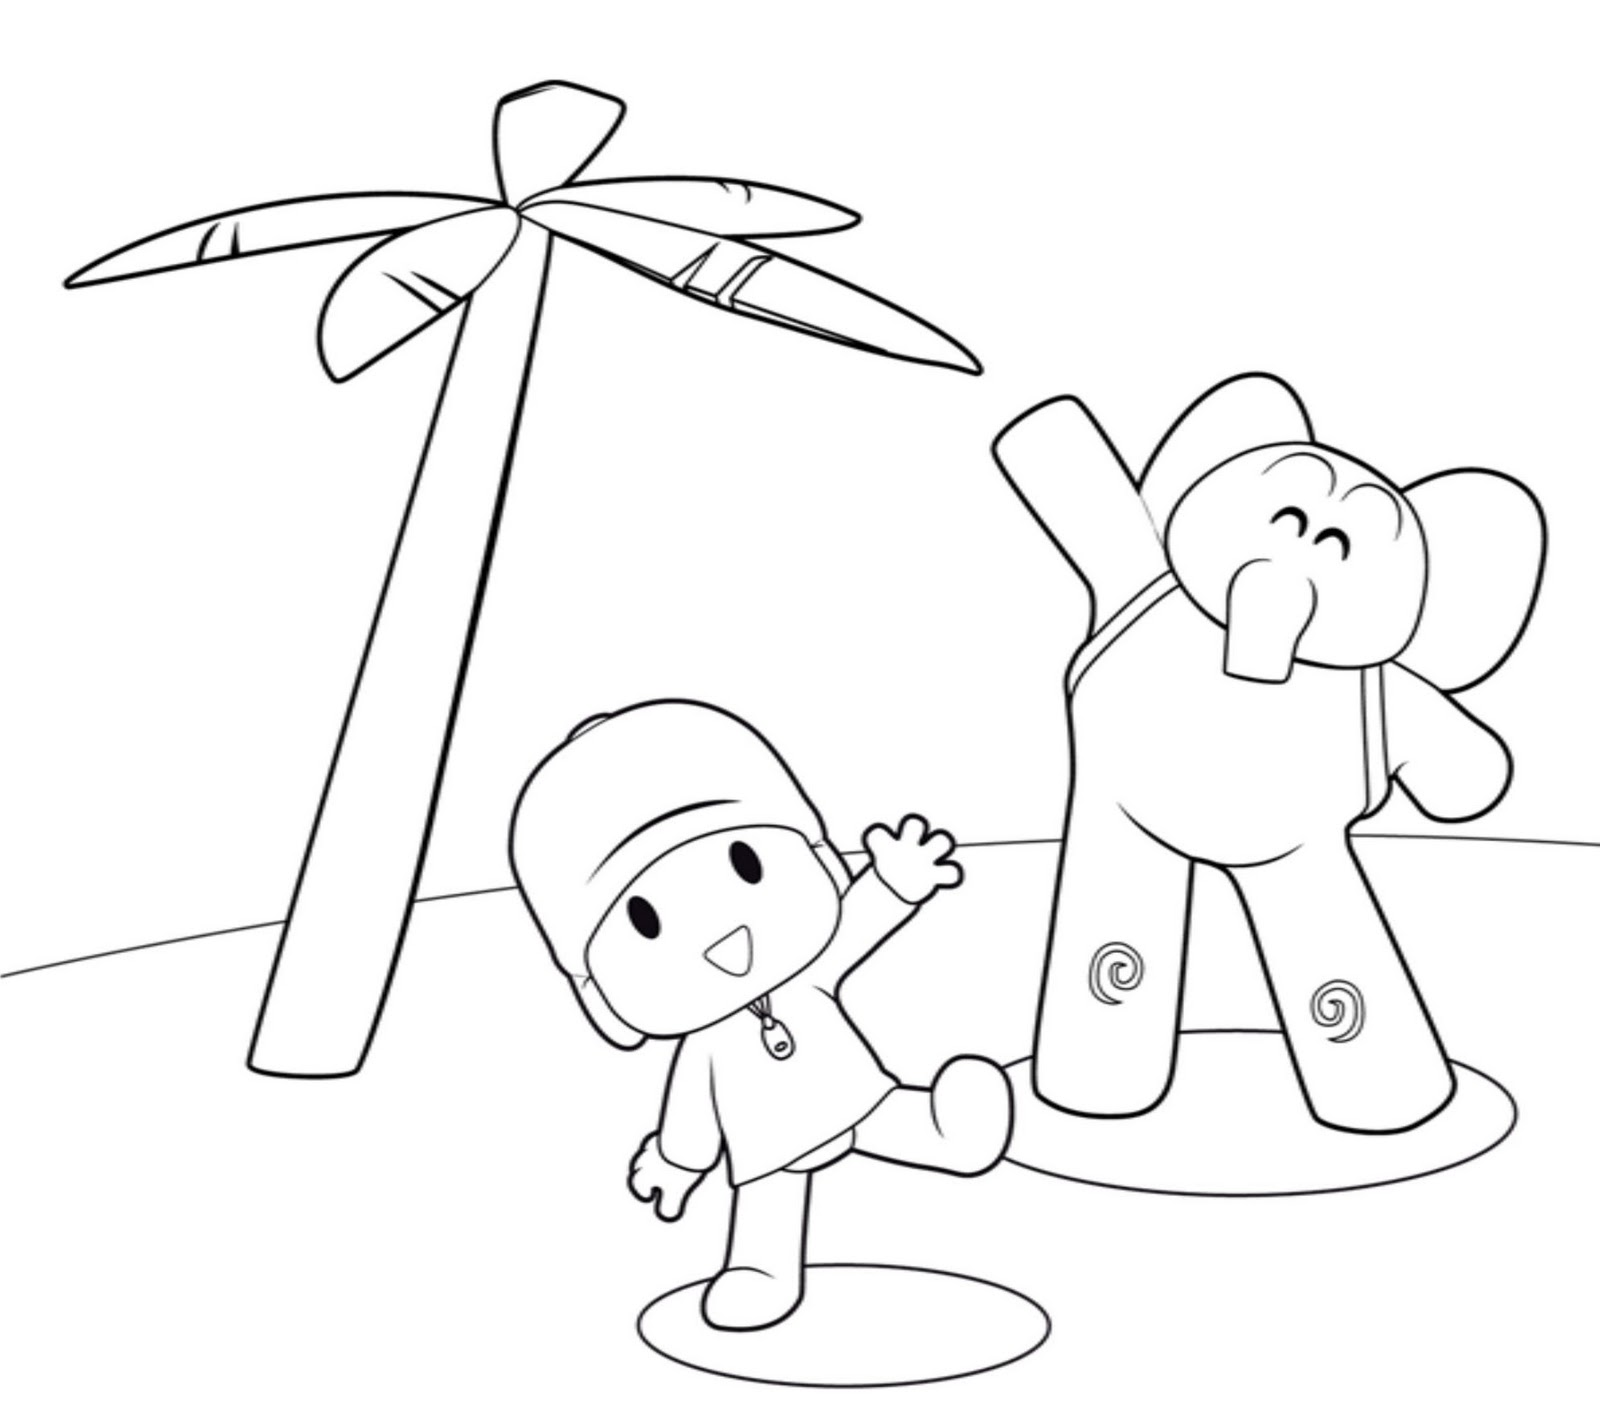 Free Printable Pocoyo Coloring Pages For Kids Free Printable Colouring Pages For Toddlers